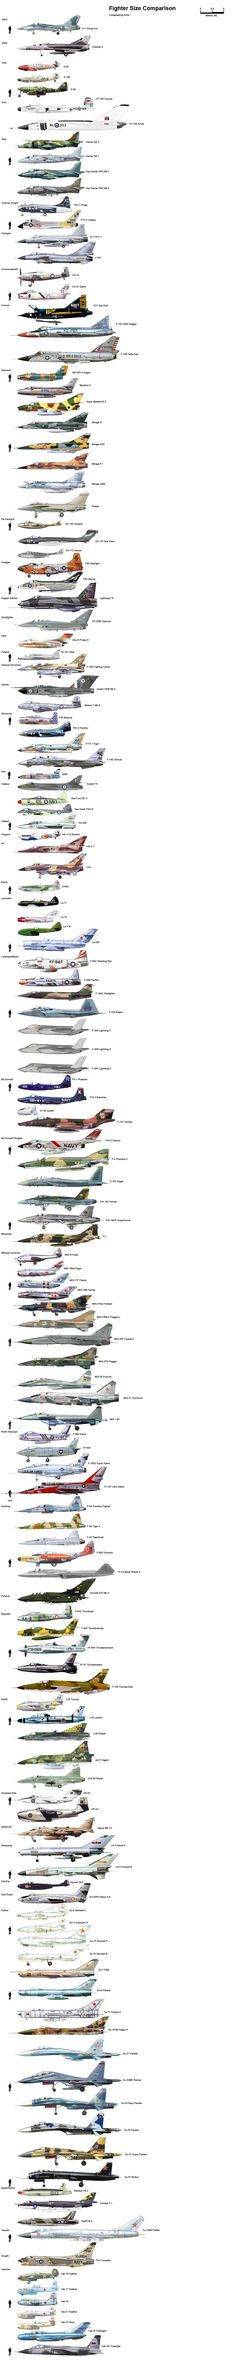 Patterns of International Plane's; Size & Scale Comparisons                                                                                                                                                     More